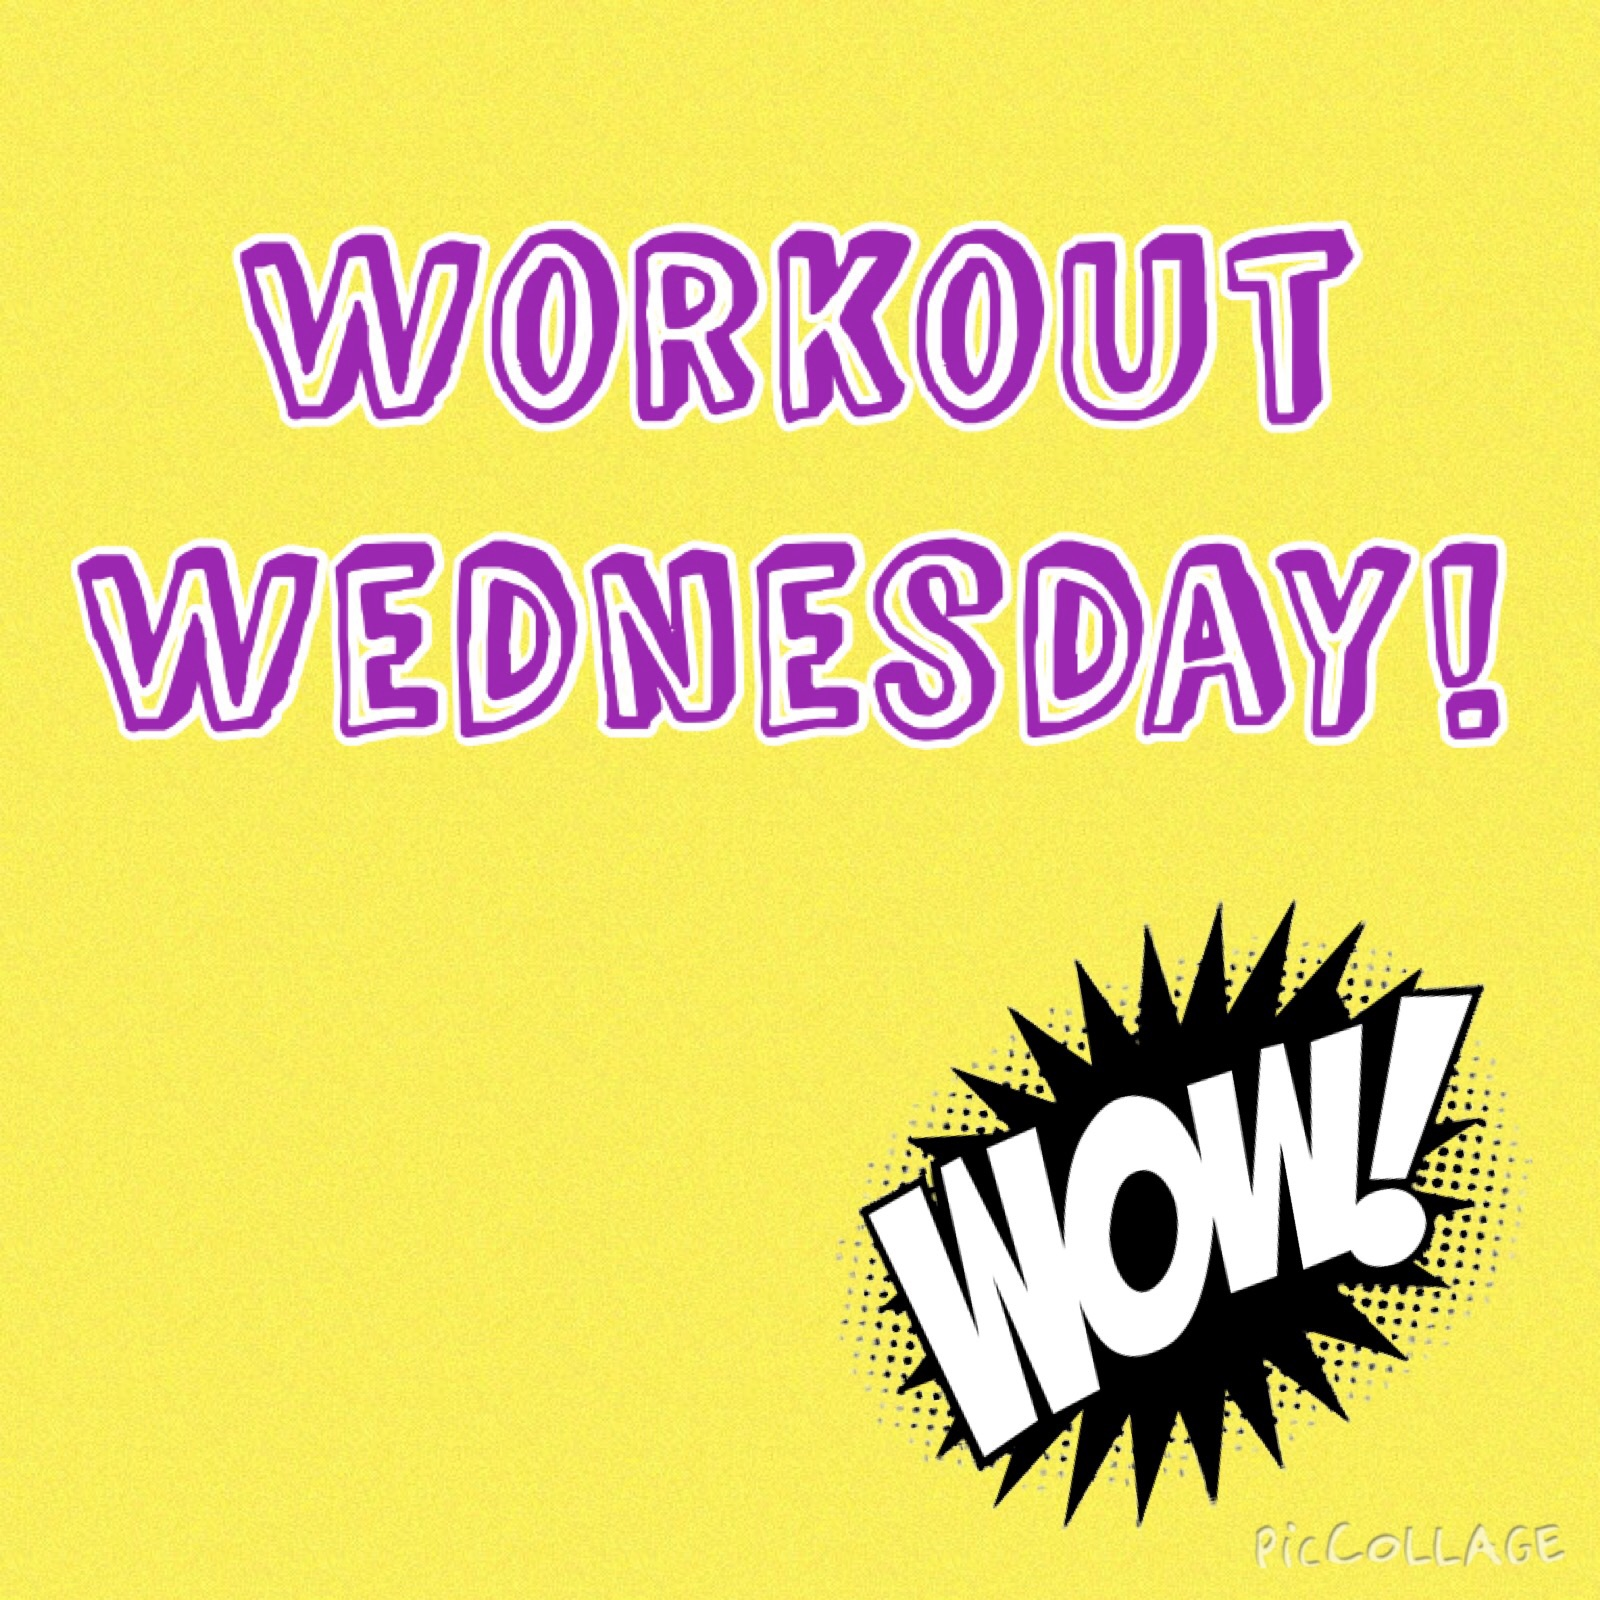 Image result for WORK OUT WEDNESDAY